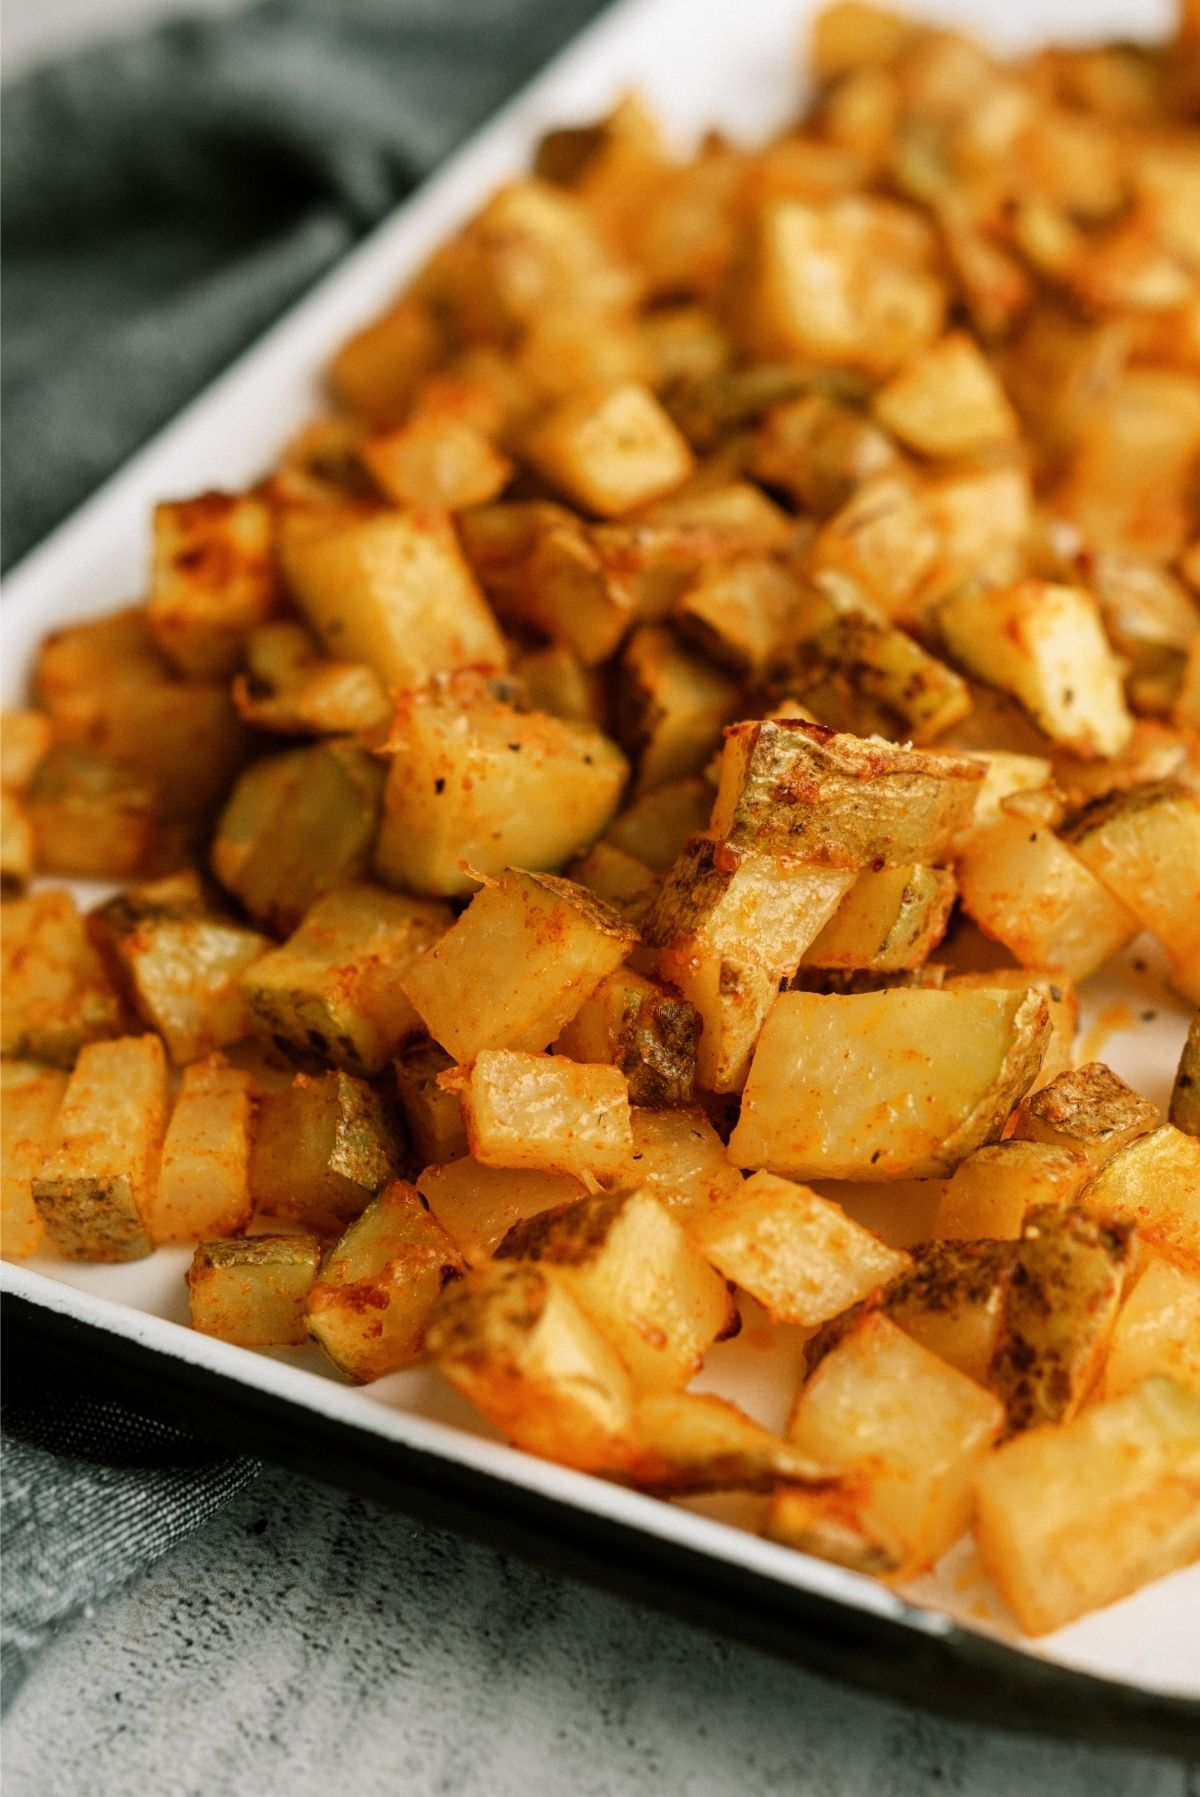 Instant Pot Air Fryer Roasted Potatoes